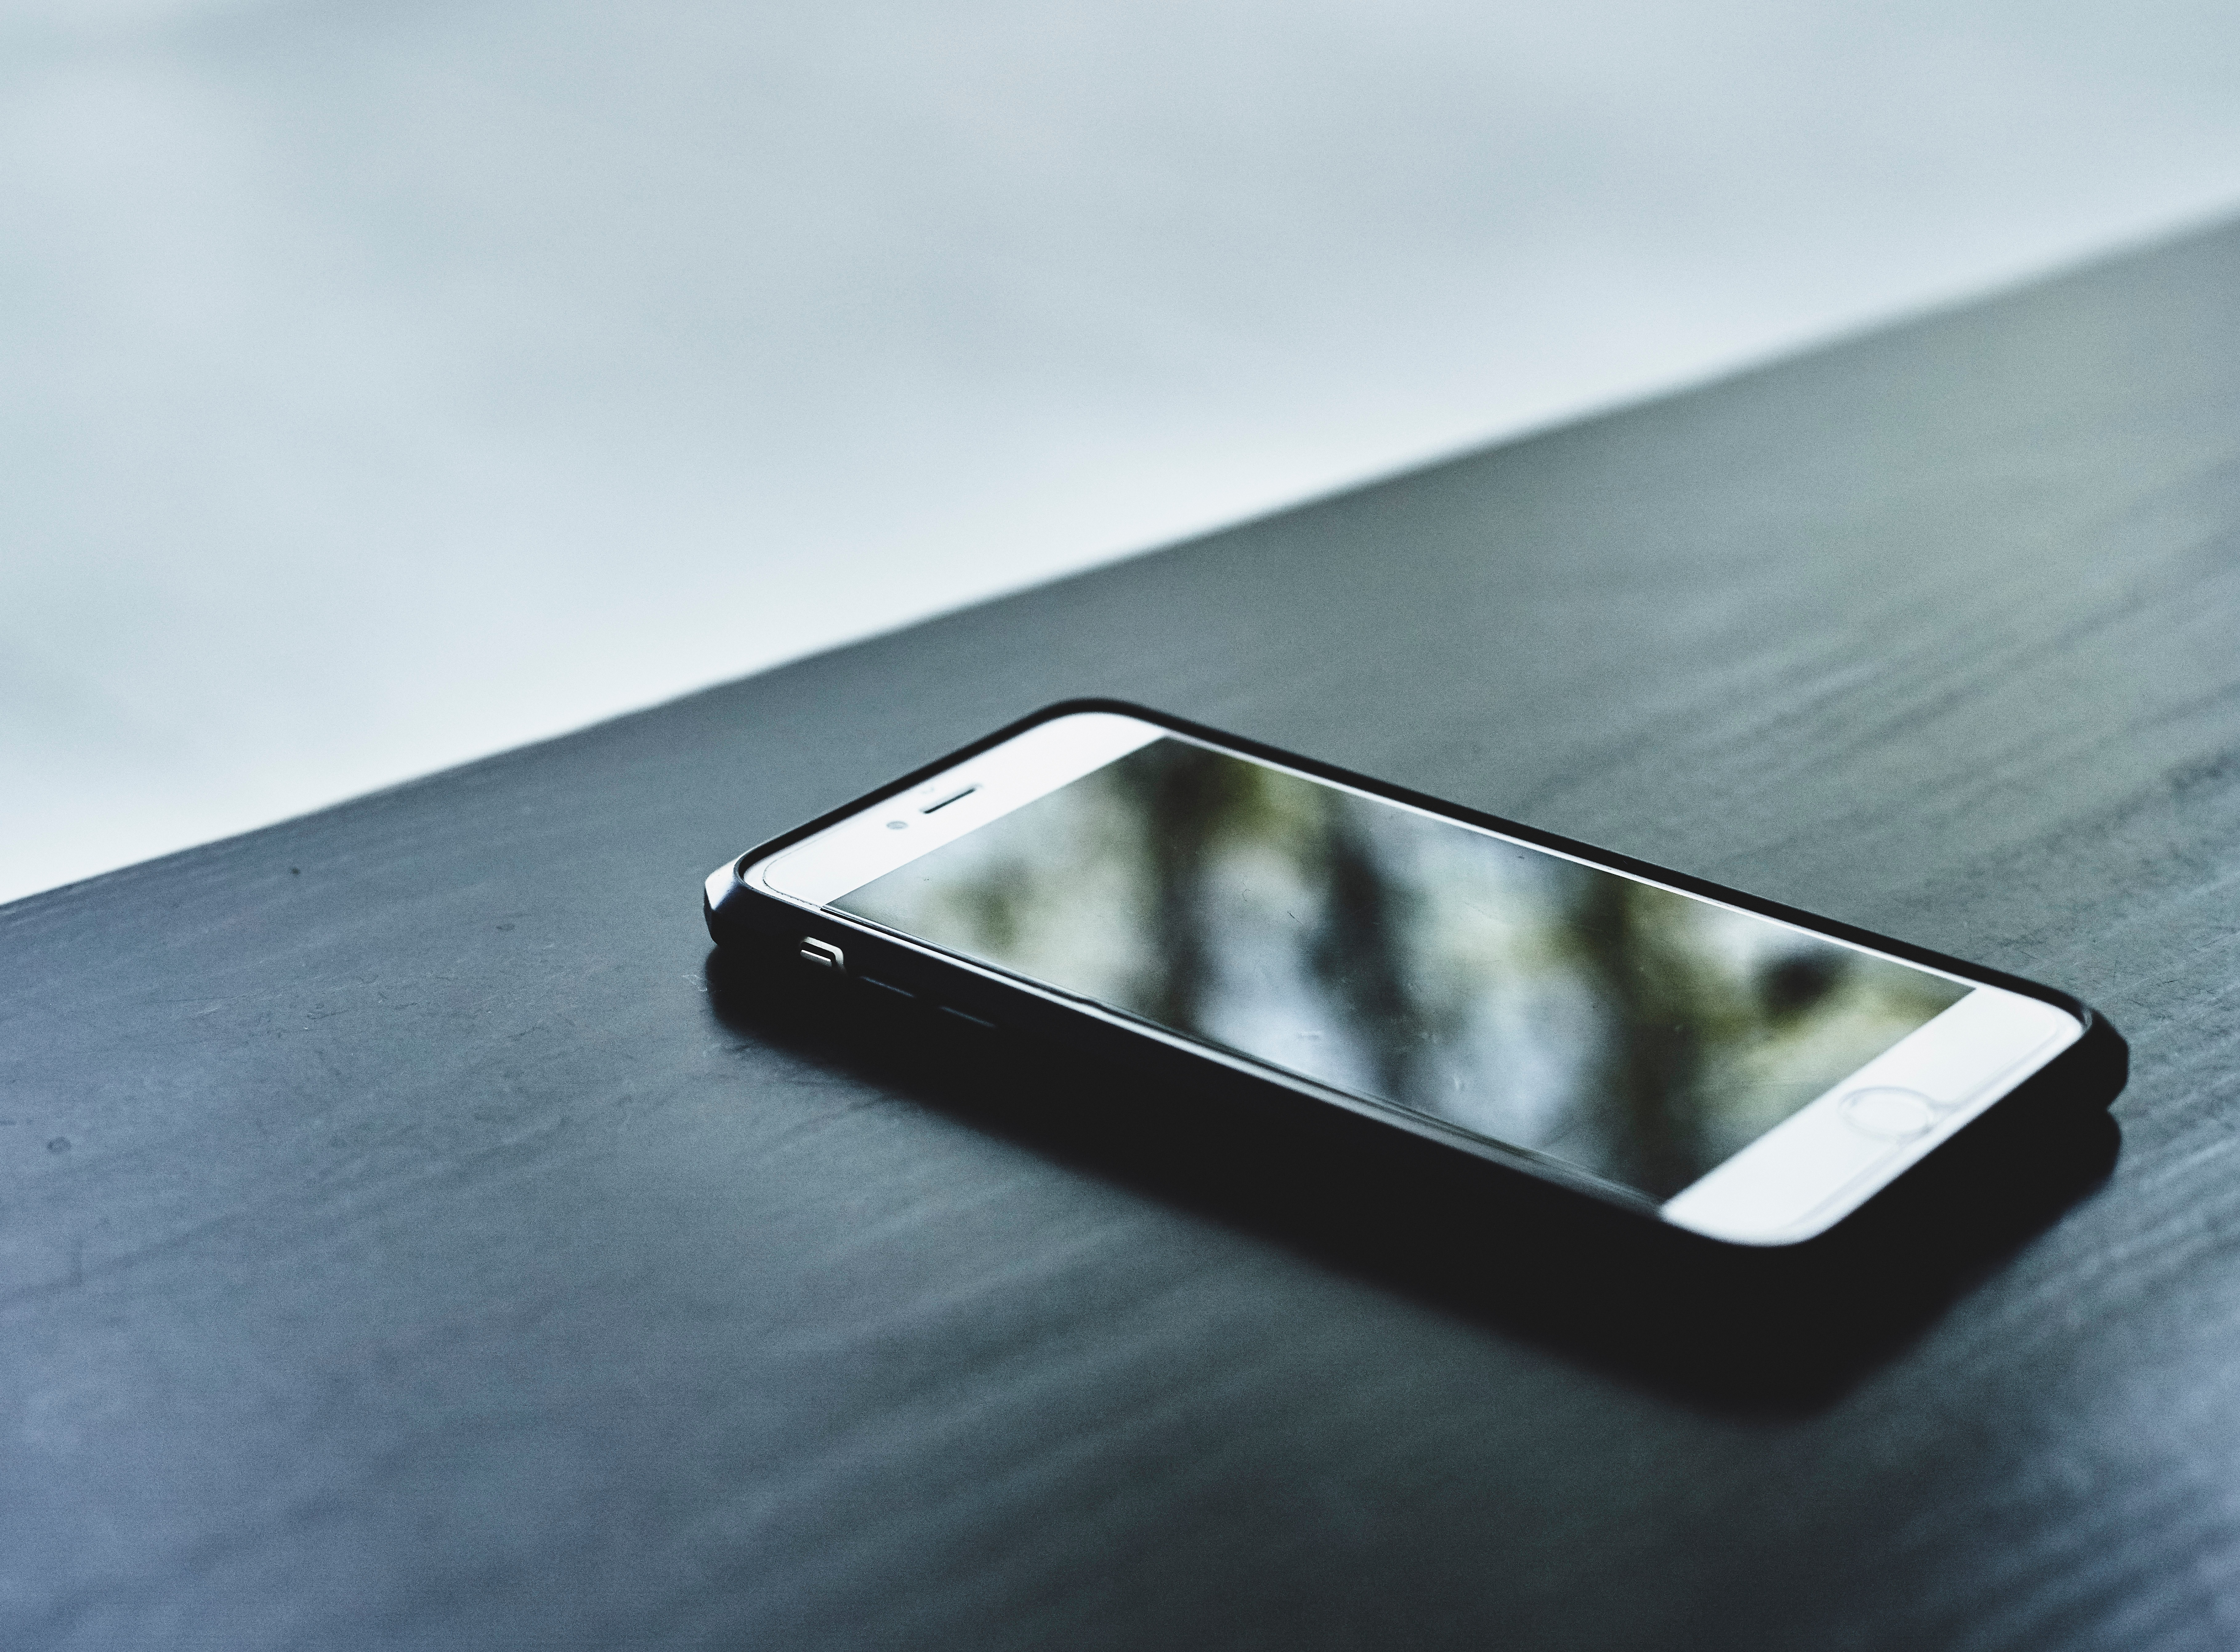 3 Reasons to Consider Ditching Your Smartphone